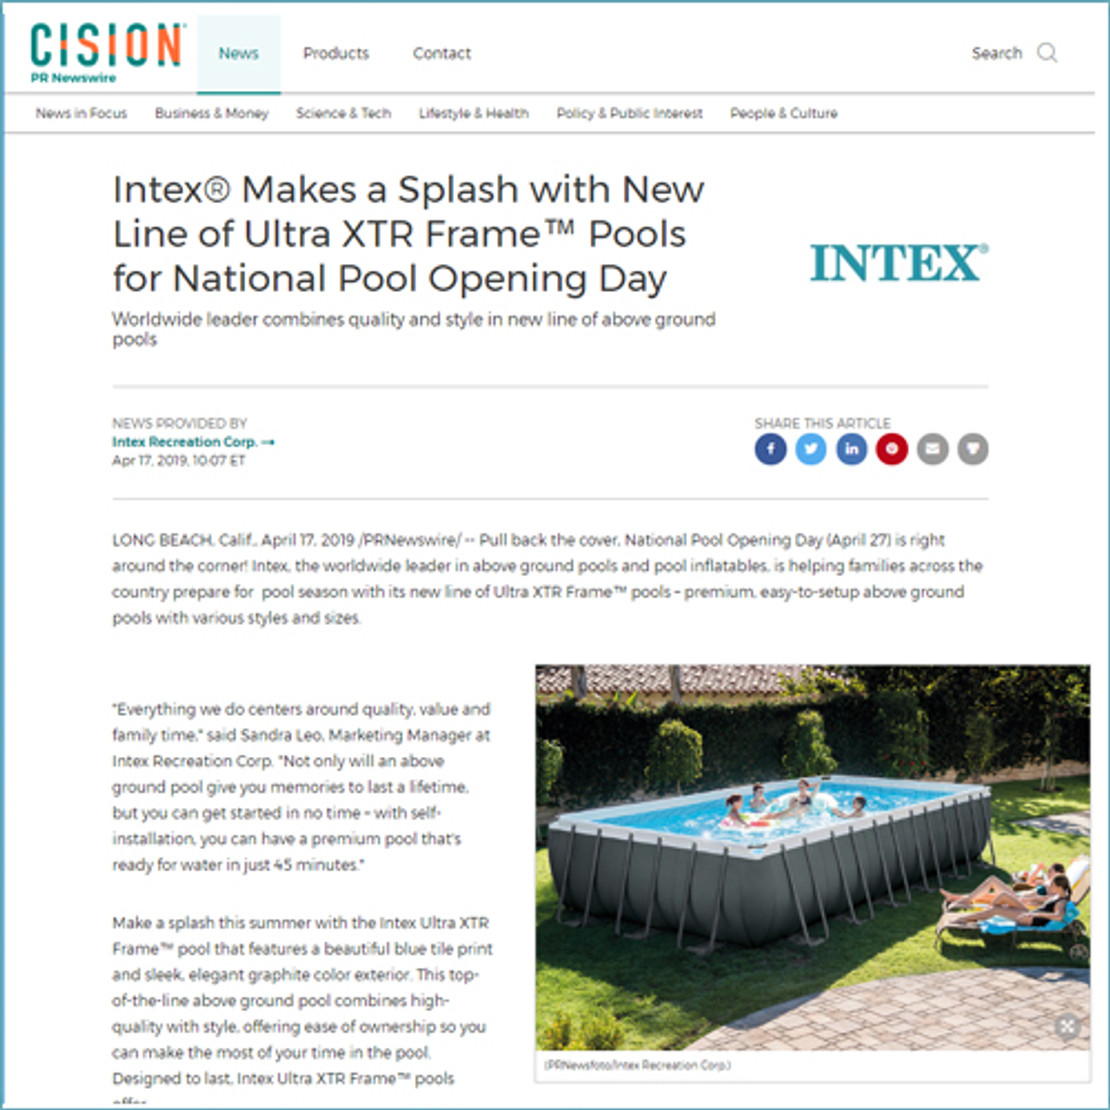 4/17/2019 - Intex® Makes a Splash with New Line of Ultra XTR™ Frame Pools for National Pool Opening Day